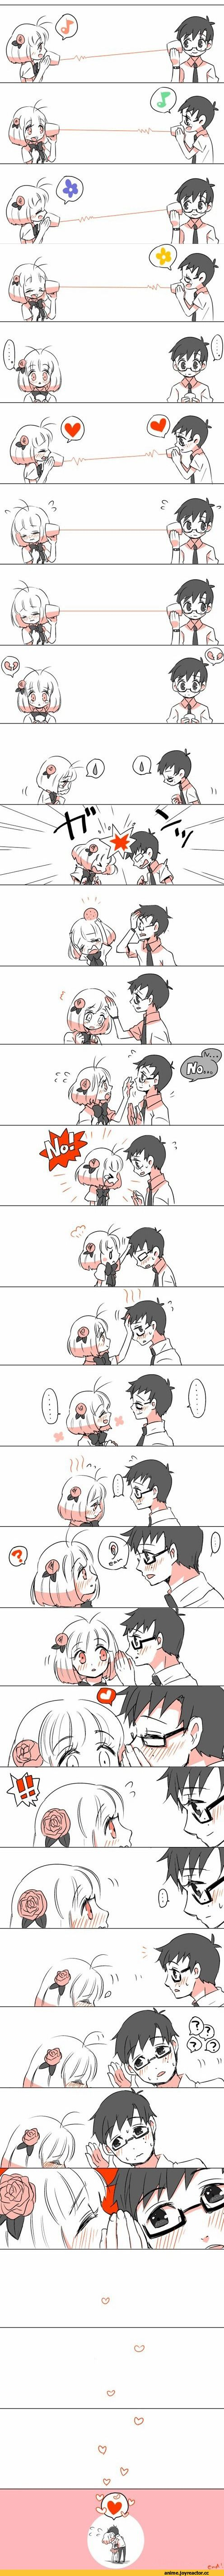 Ao no Exorcist   yukio and shiemi   I prefer Rin but this is still super cute